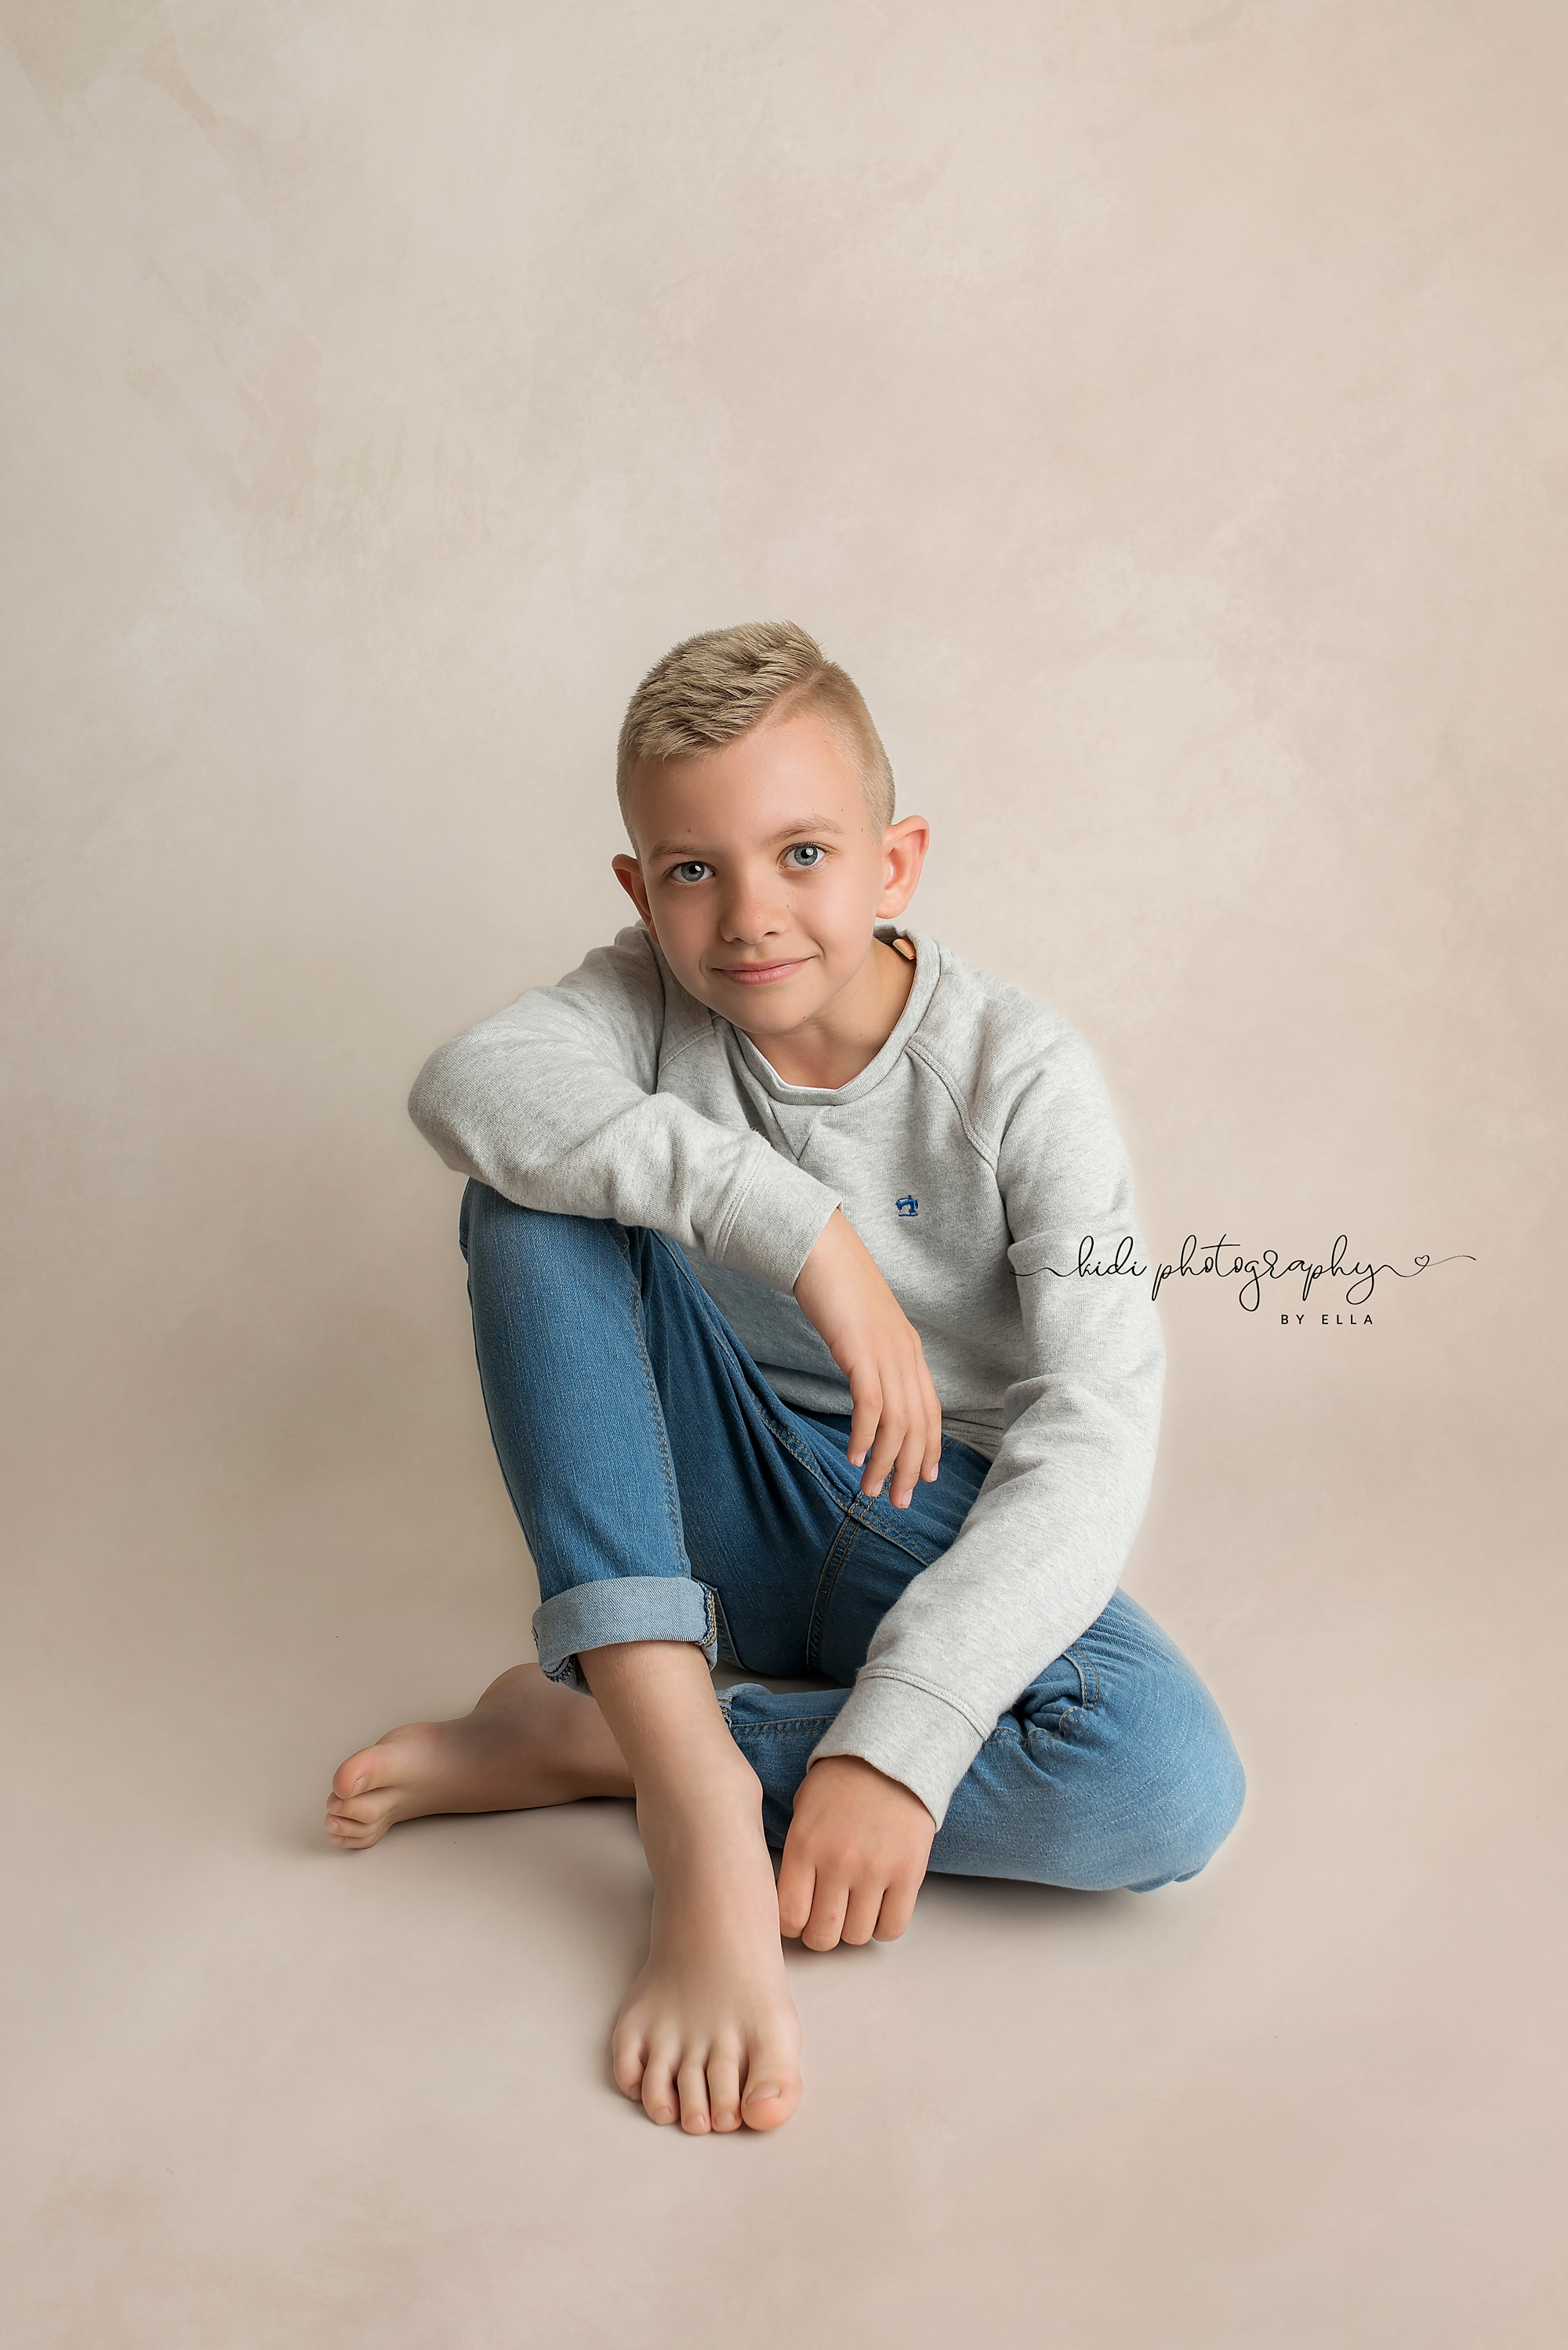 Kids portrait by Kidi Photography